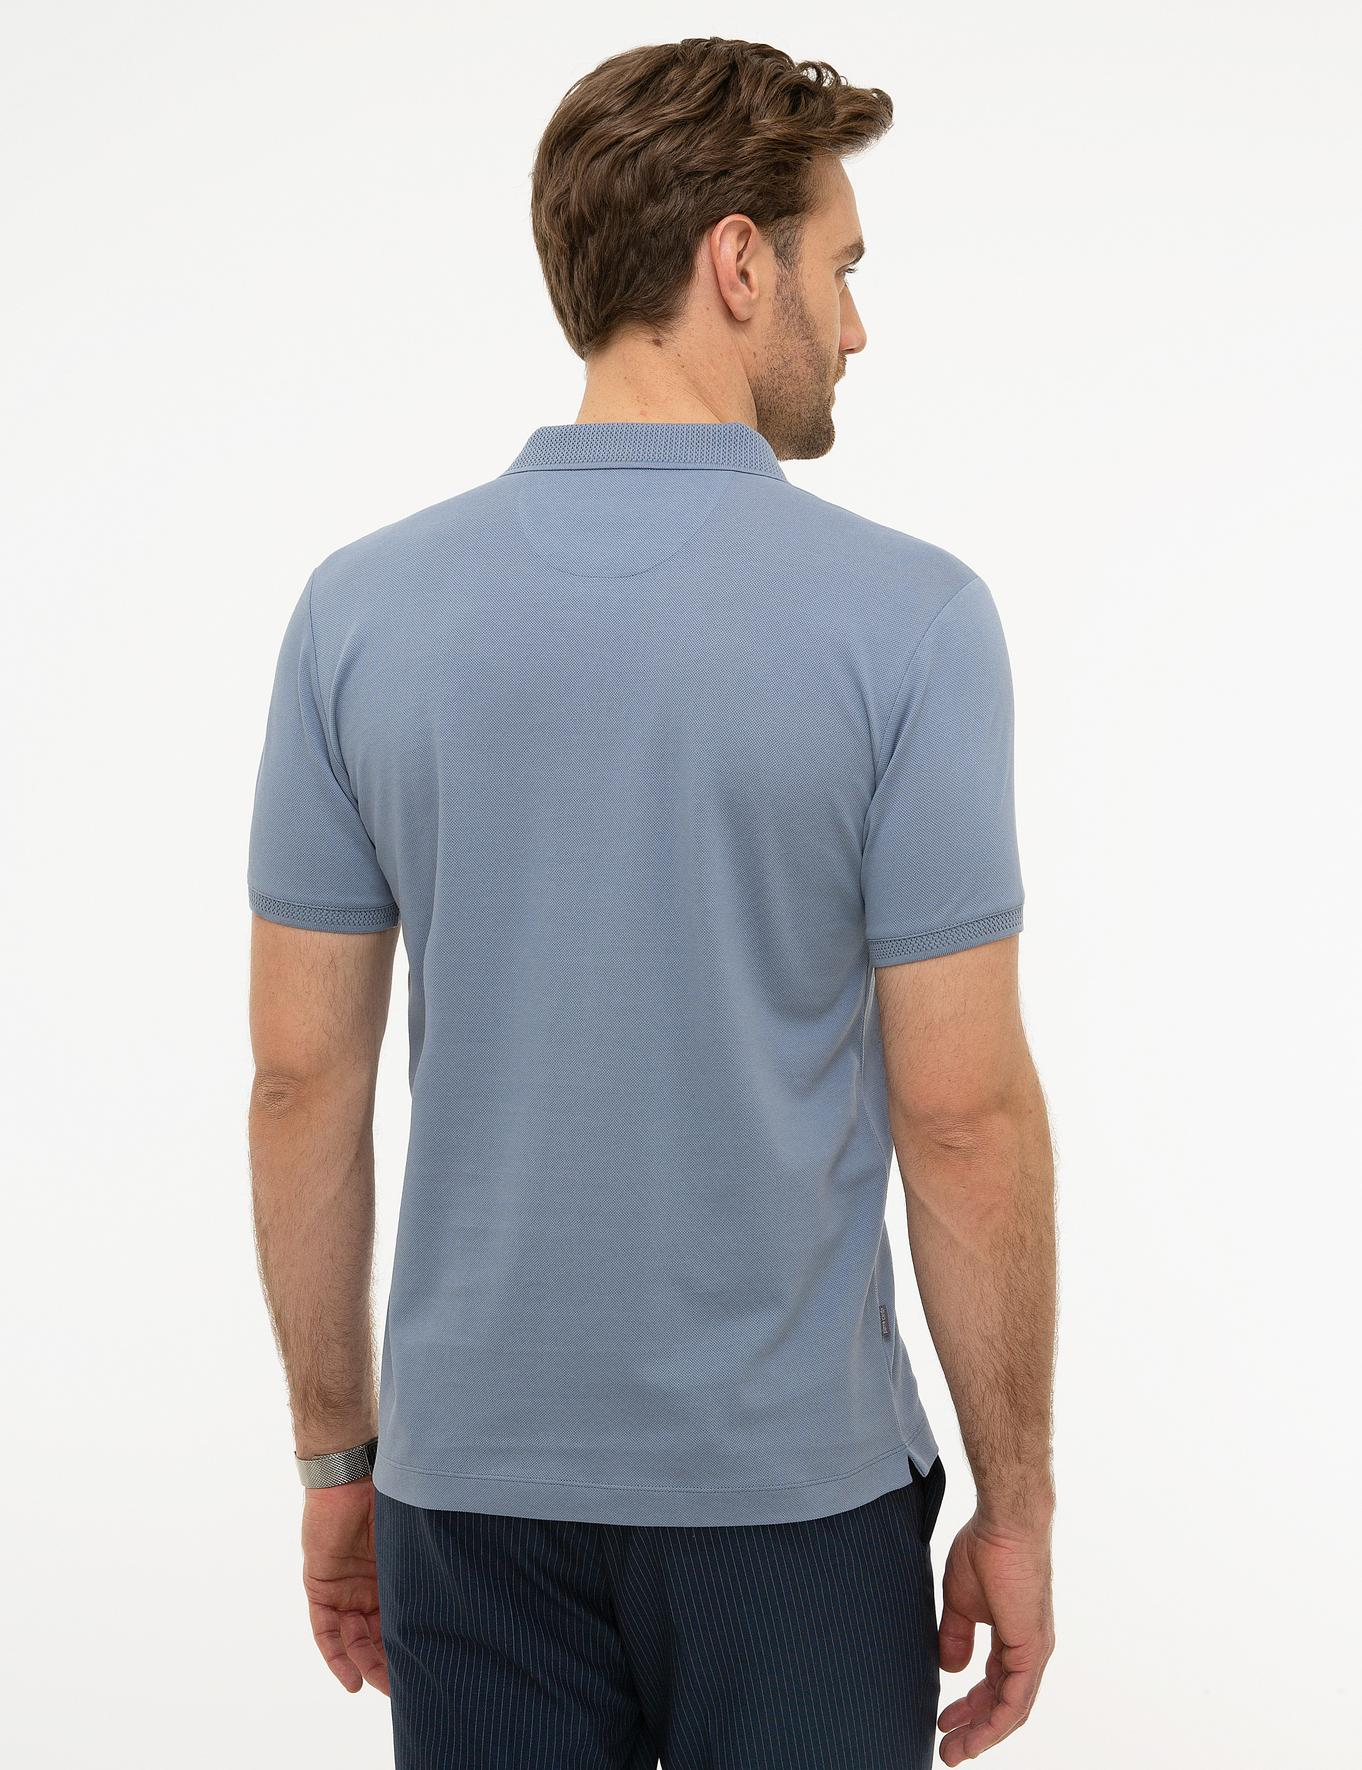 Lila Slim Fit Merserize Polo Yaka T-Shirt